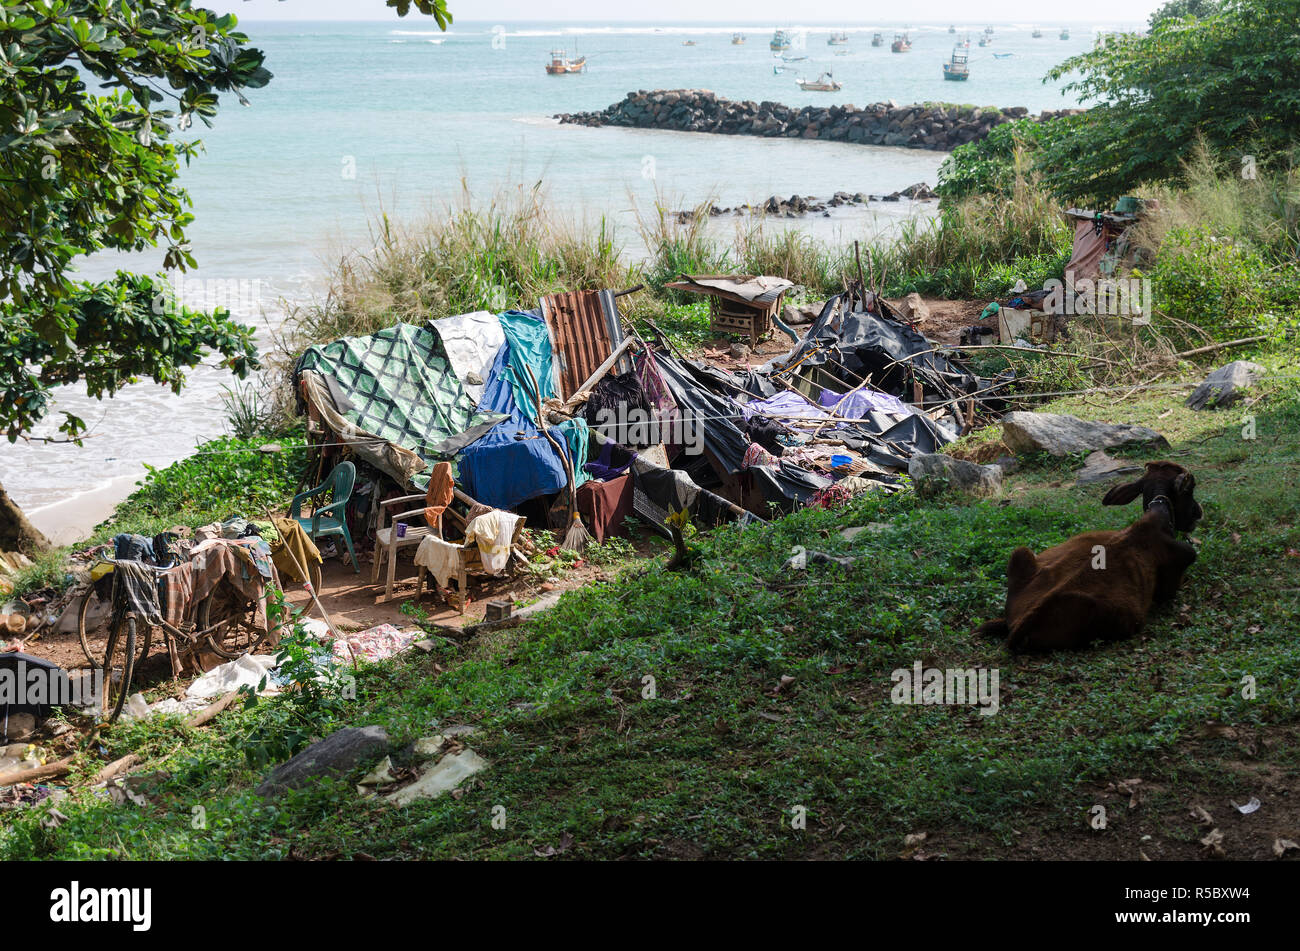 Place for life of homeless people, near beach, cow. Concept of poverty and deprivation, Overpopulation, social problems with housing. - Stock Image